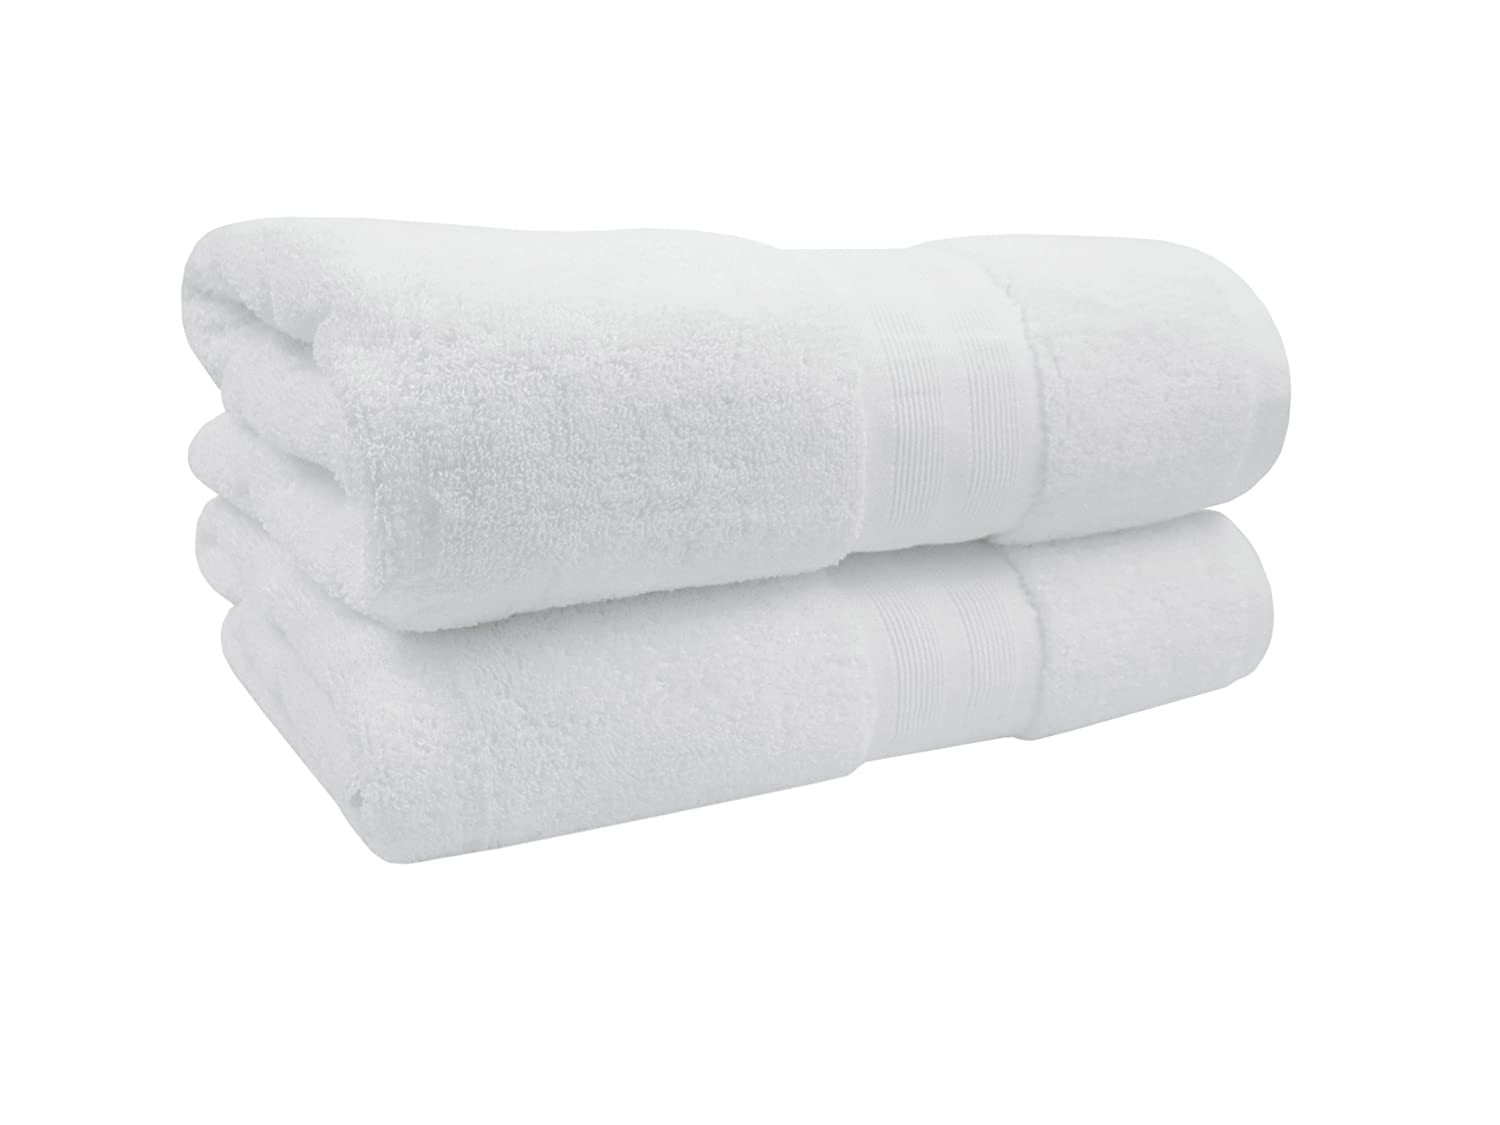 100% Organic Cotton Luxury Hand Towel- Made Here by 1888 Mills (2pk) HX04933EART